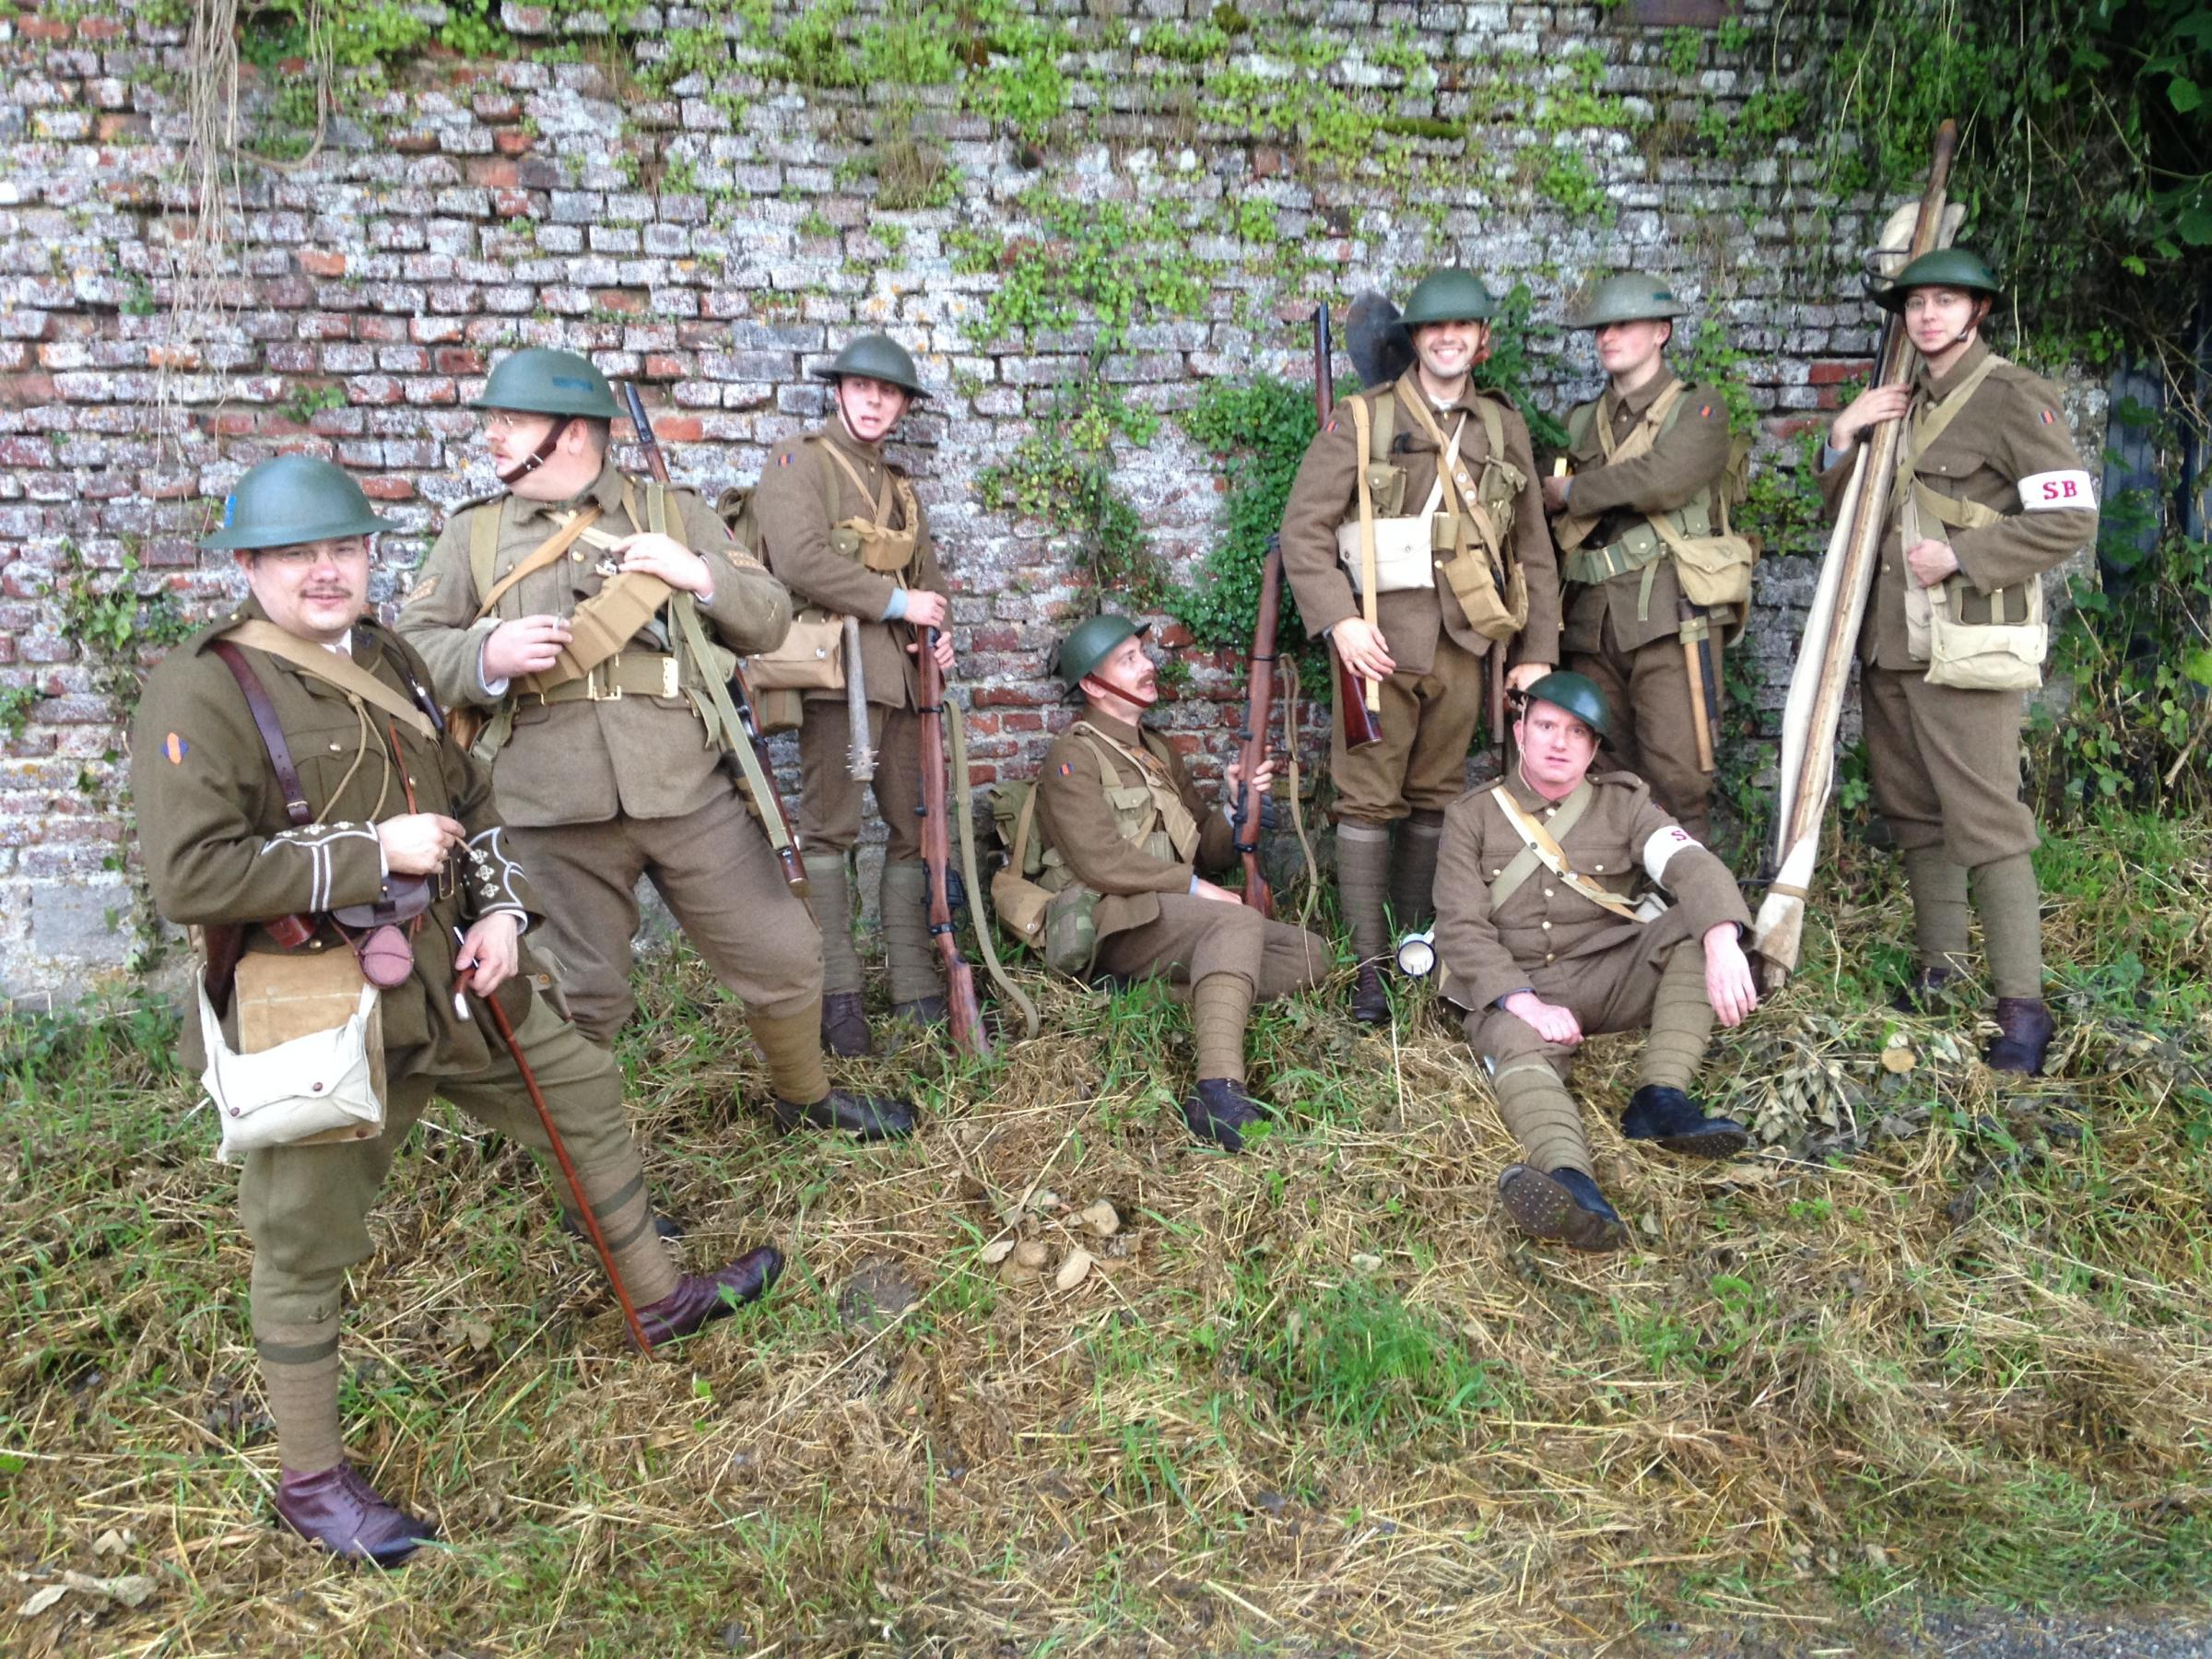 Royal Warwickshire Regiment re-enactment group will be appearing at Haden Hill House Museum to mark 100 years since the end of the First World War.